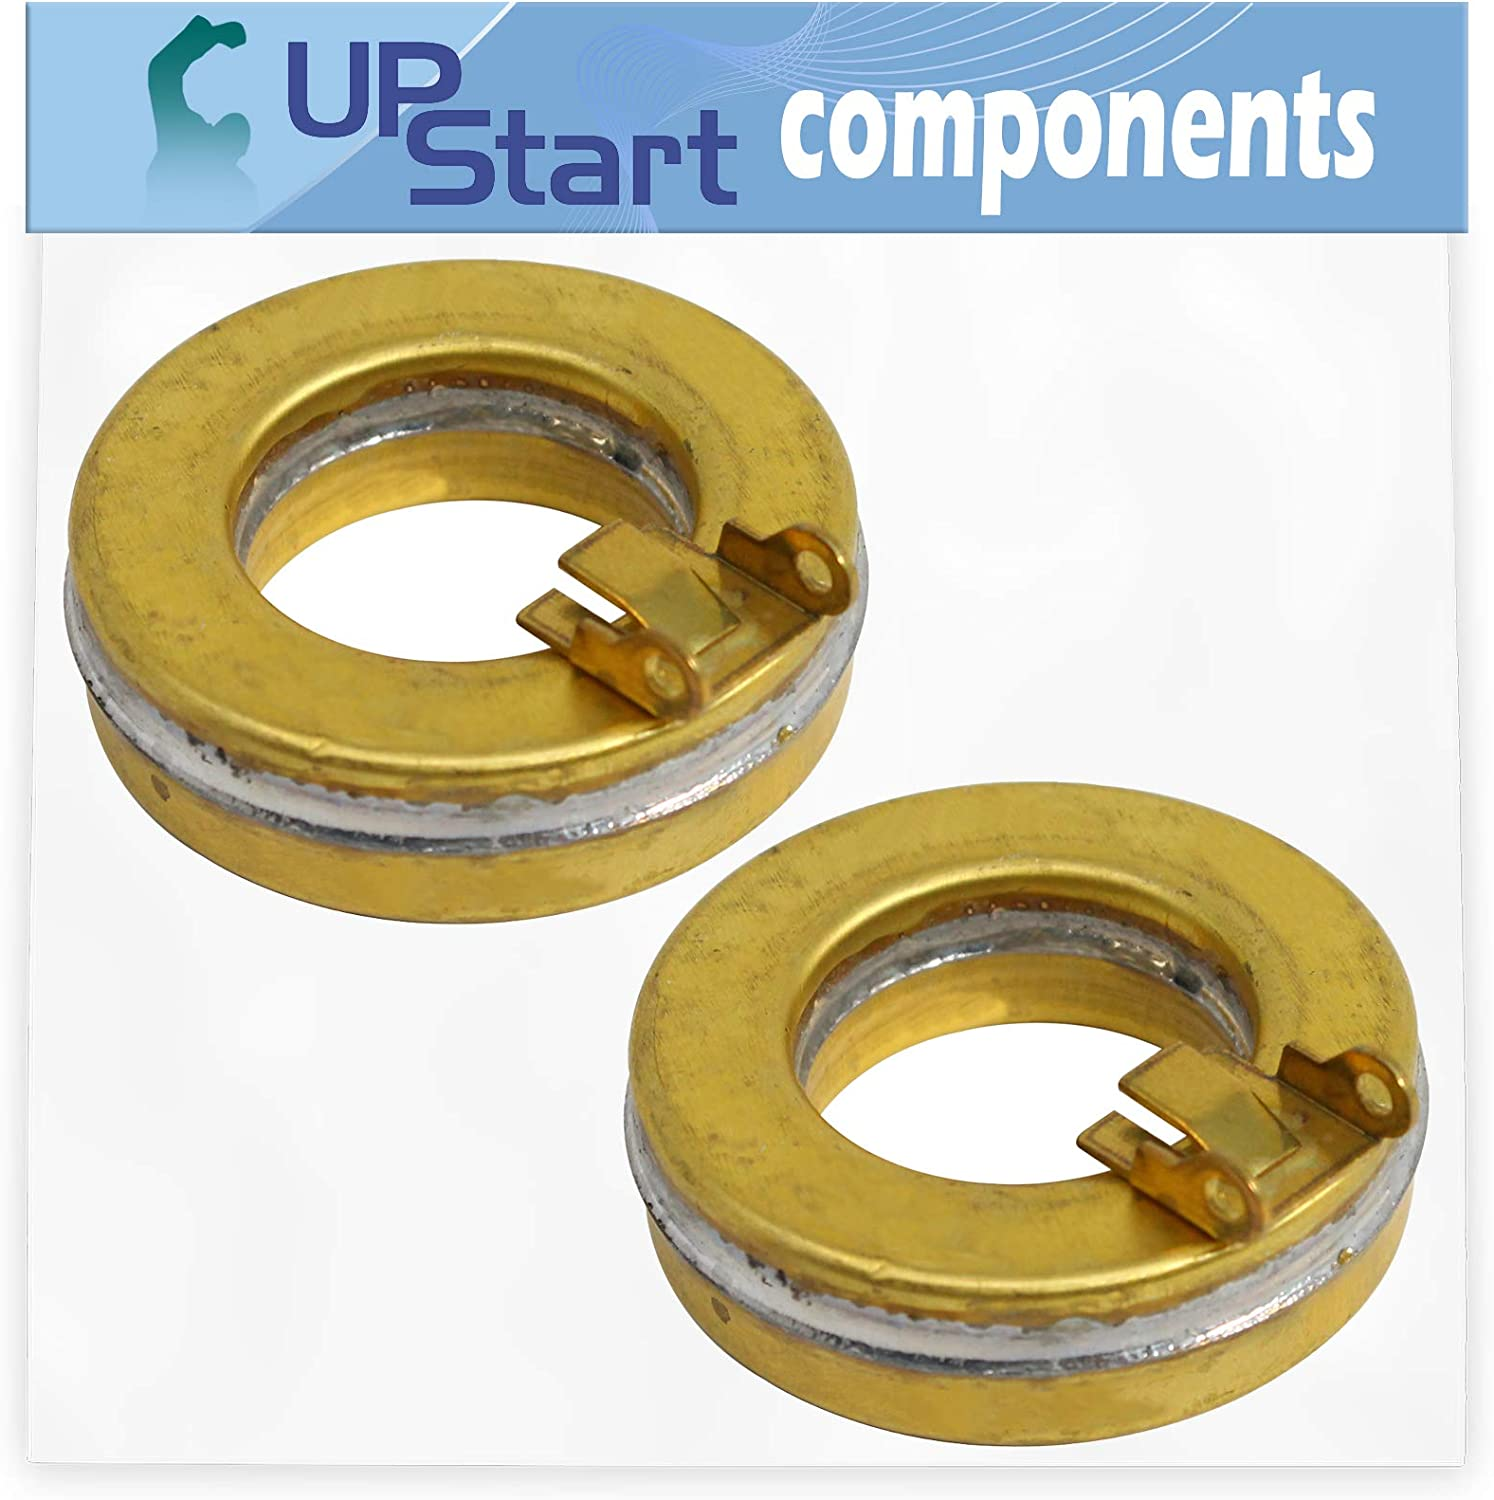 1999 UpStart Components 2-Pack 632019A Float Replacement for Cub Cadet LS27T 24AD536B101 Engine Compatible with 632019 Carburetor Float